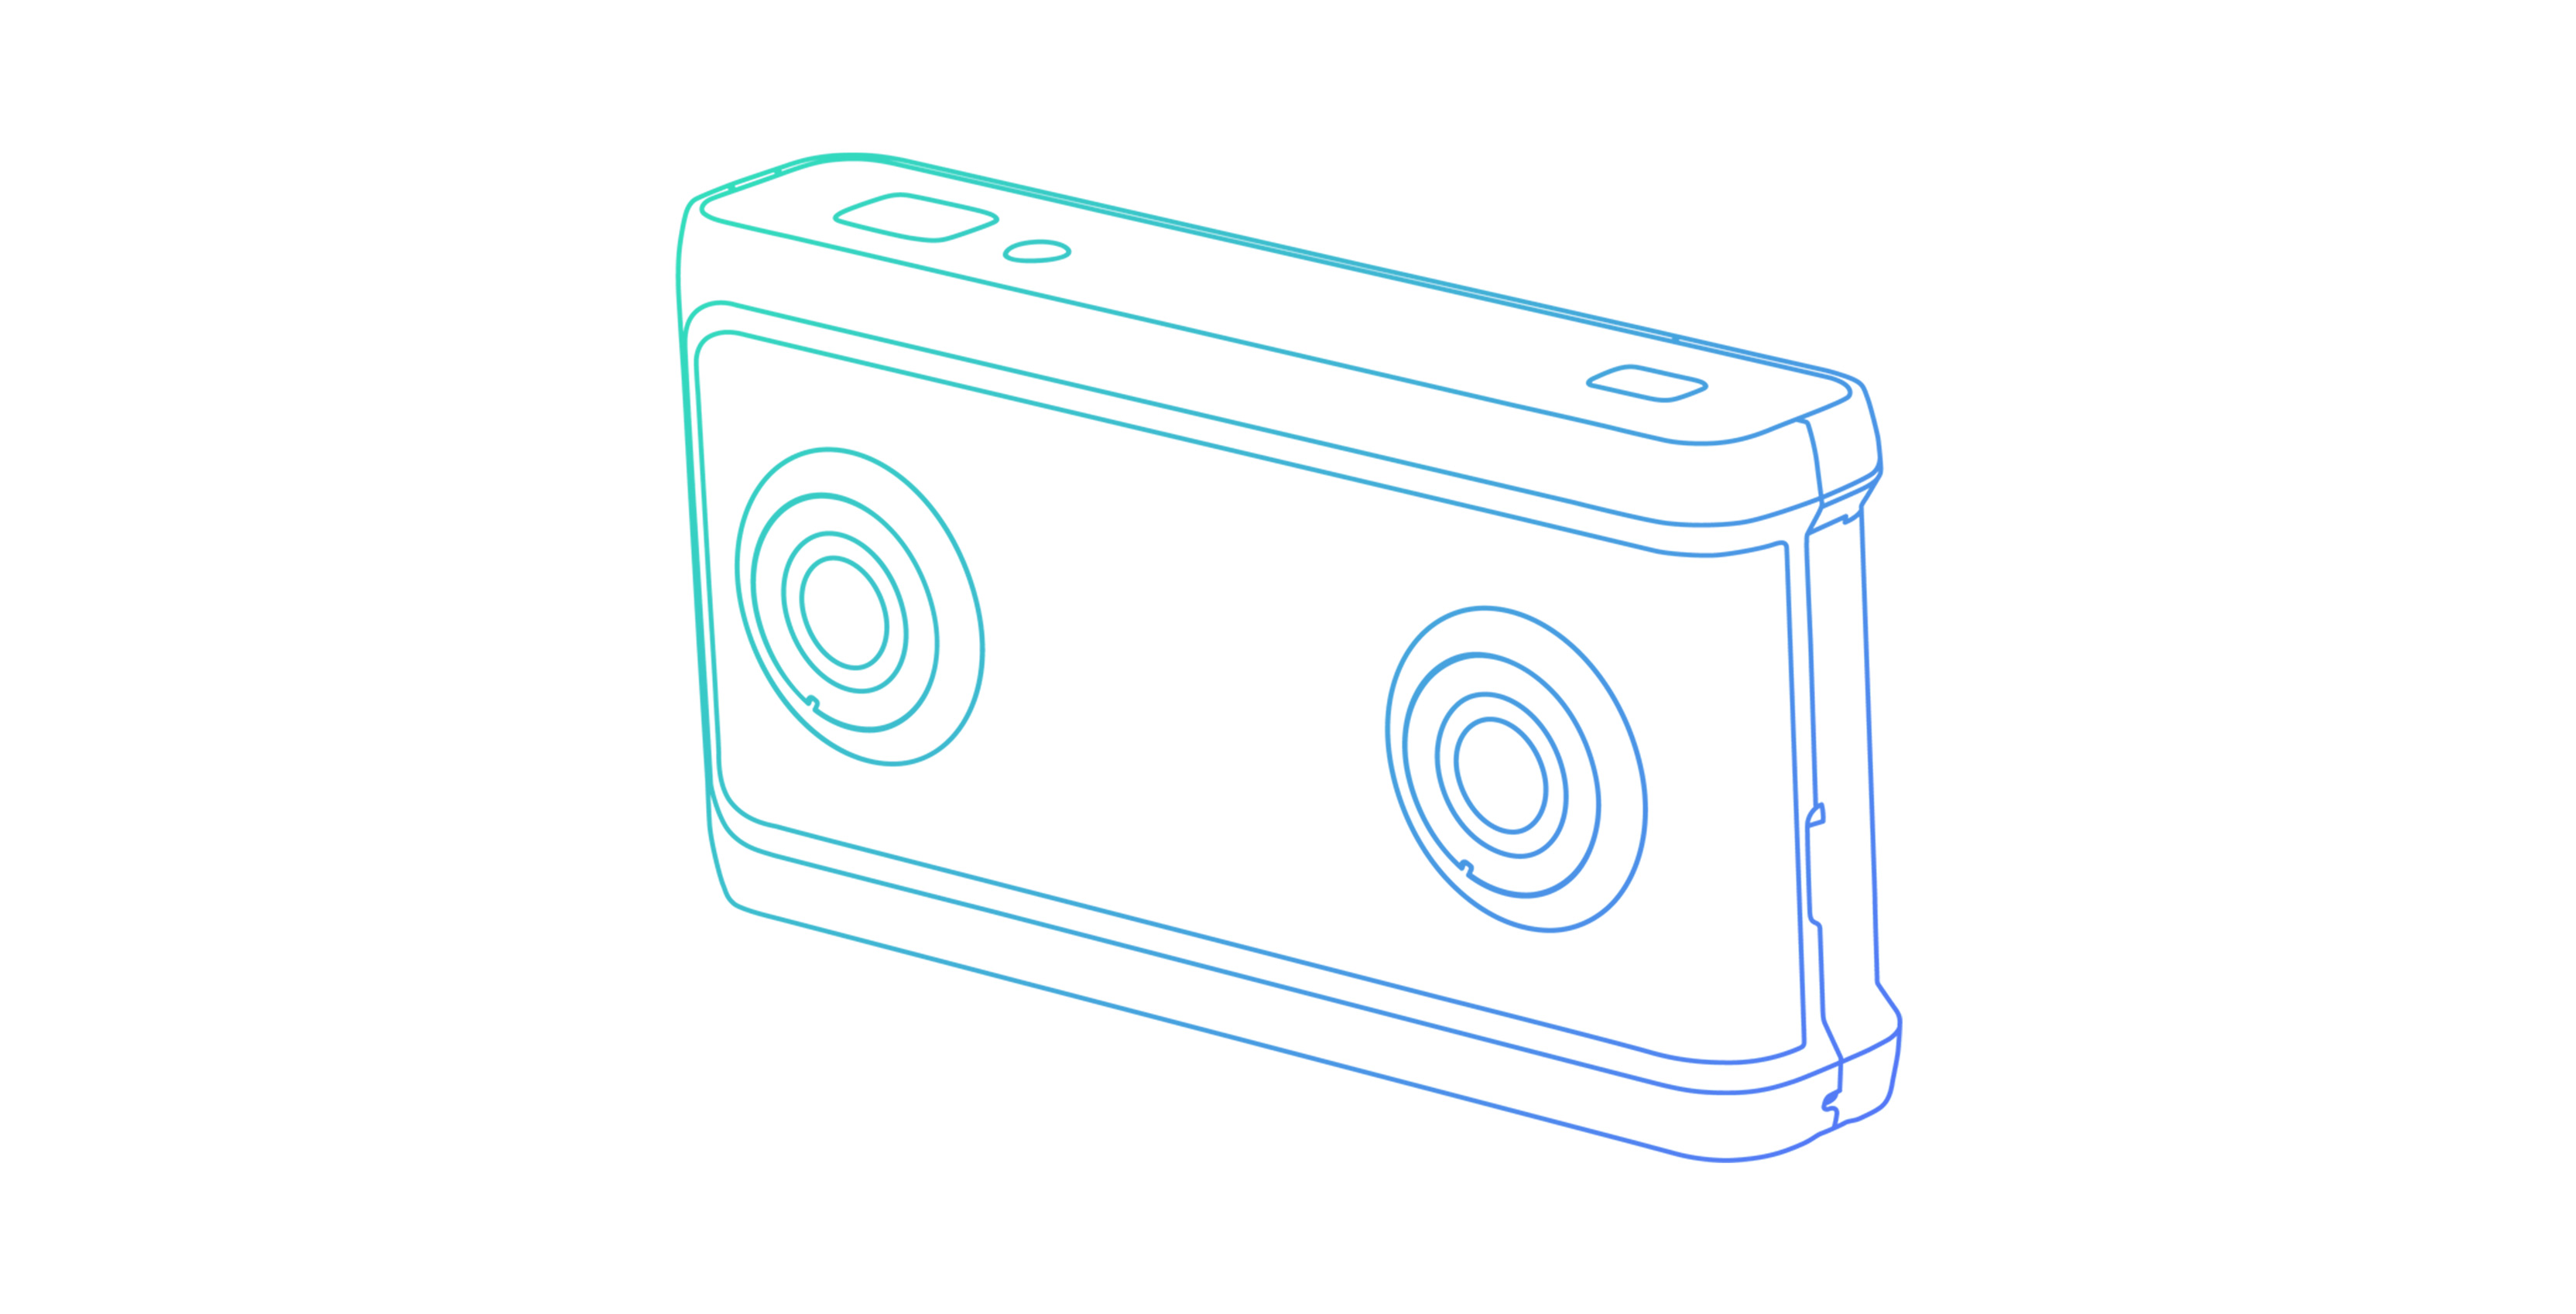 Example of what a VR180 might look like